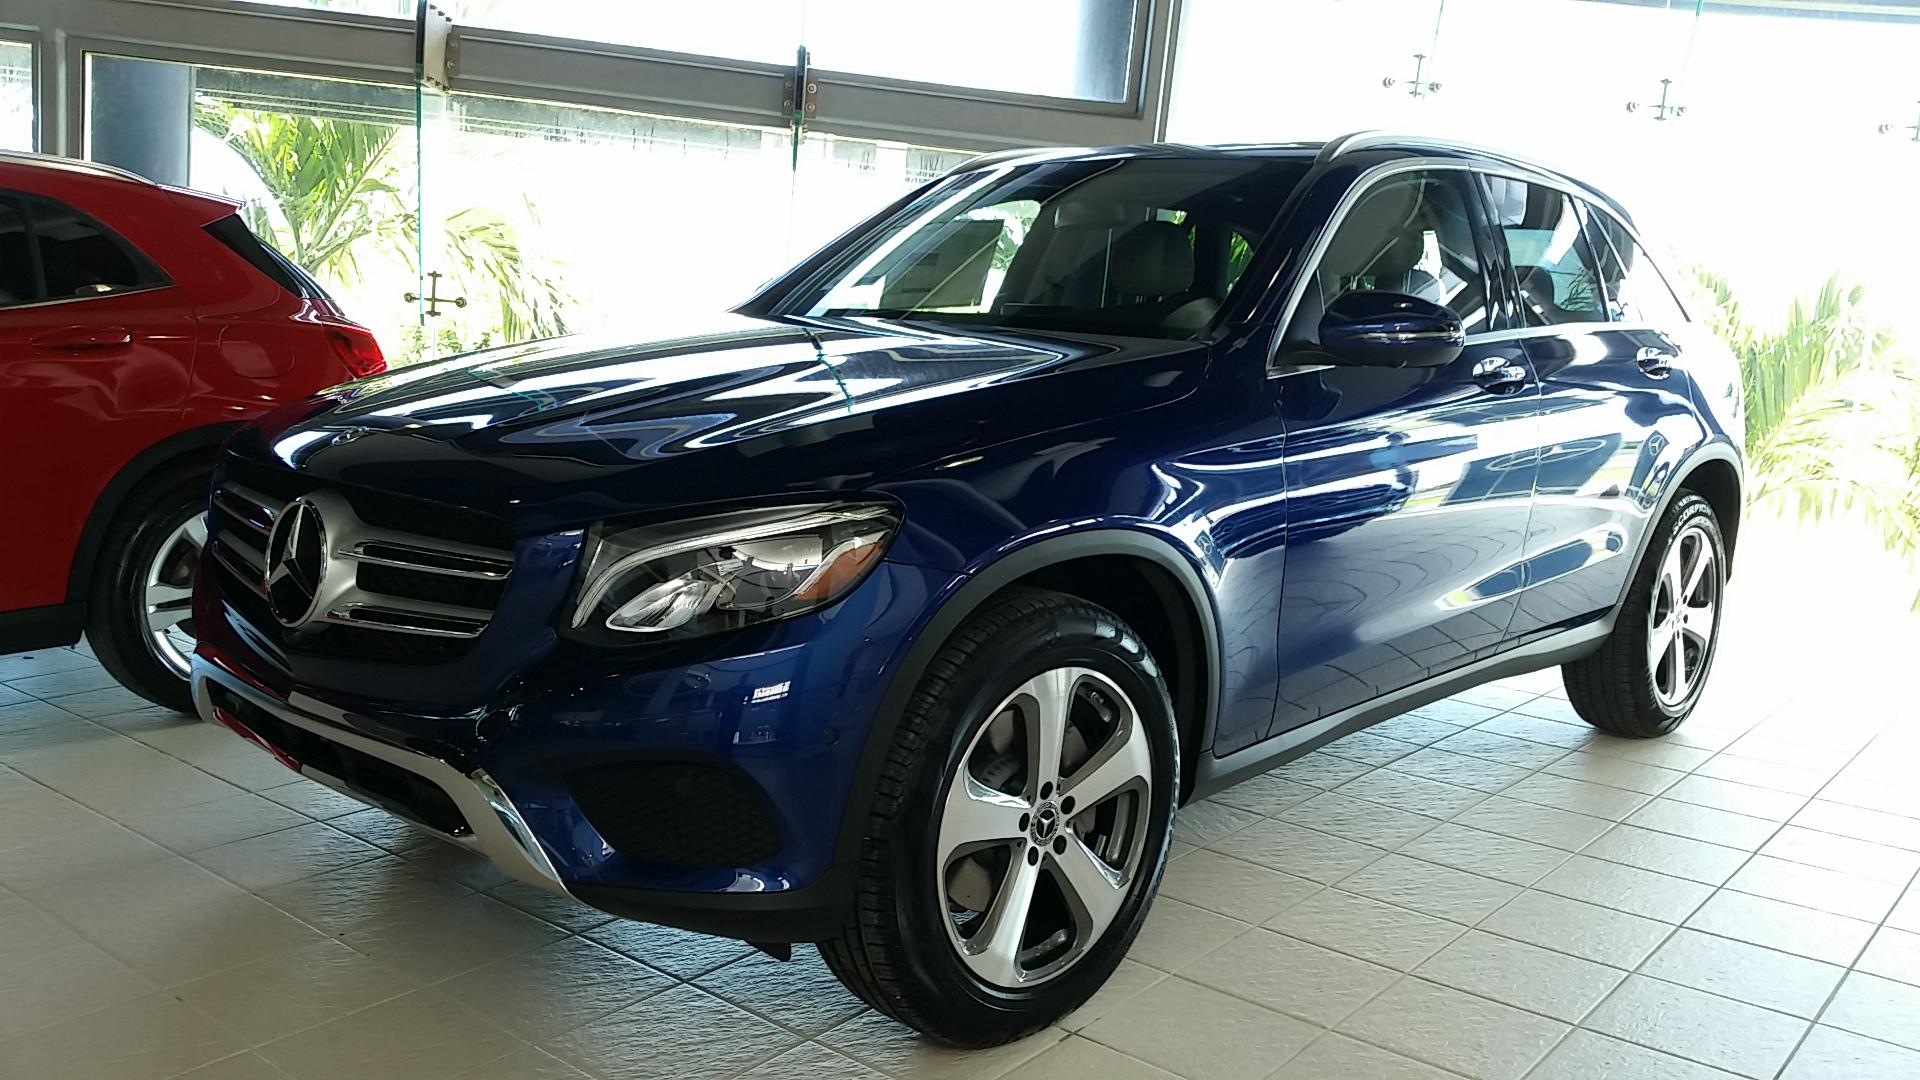 pre owned 2018 mercedes benz glc glc 300 suv in carolina uc9226hm garage isla verde. Black Bedroom Furniture Sets. Home Design Ideas